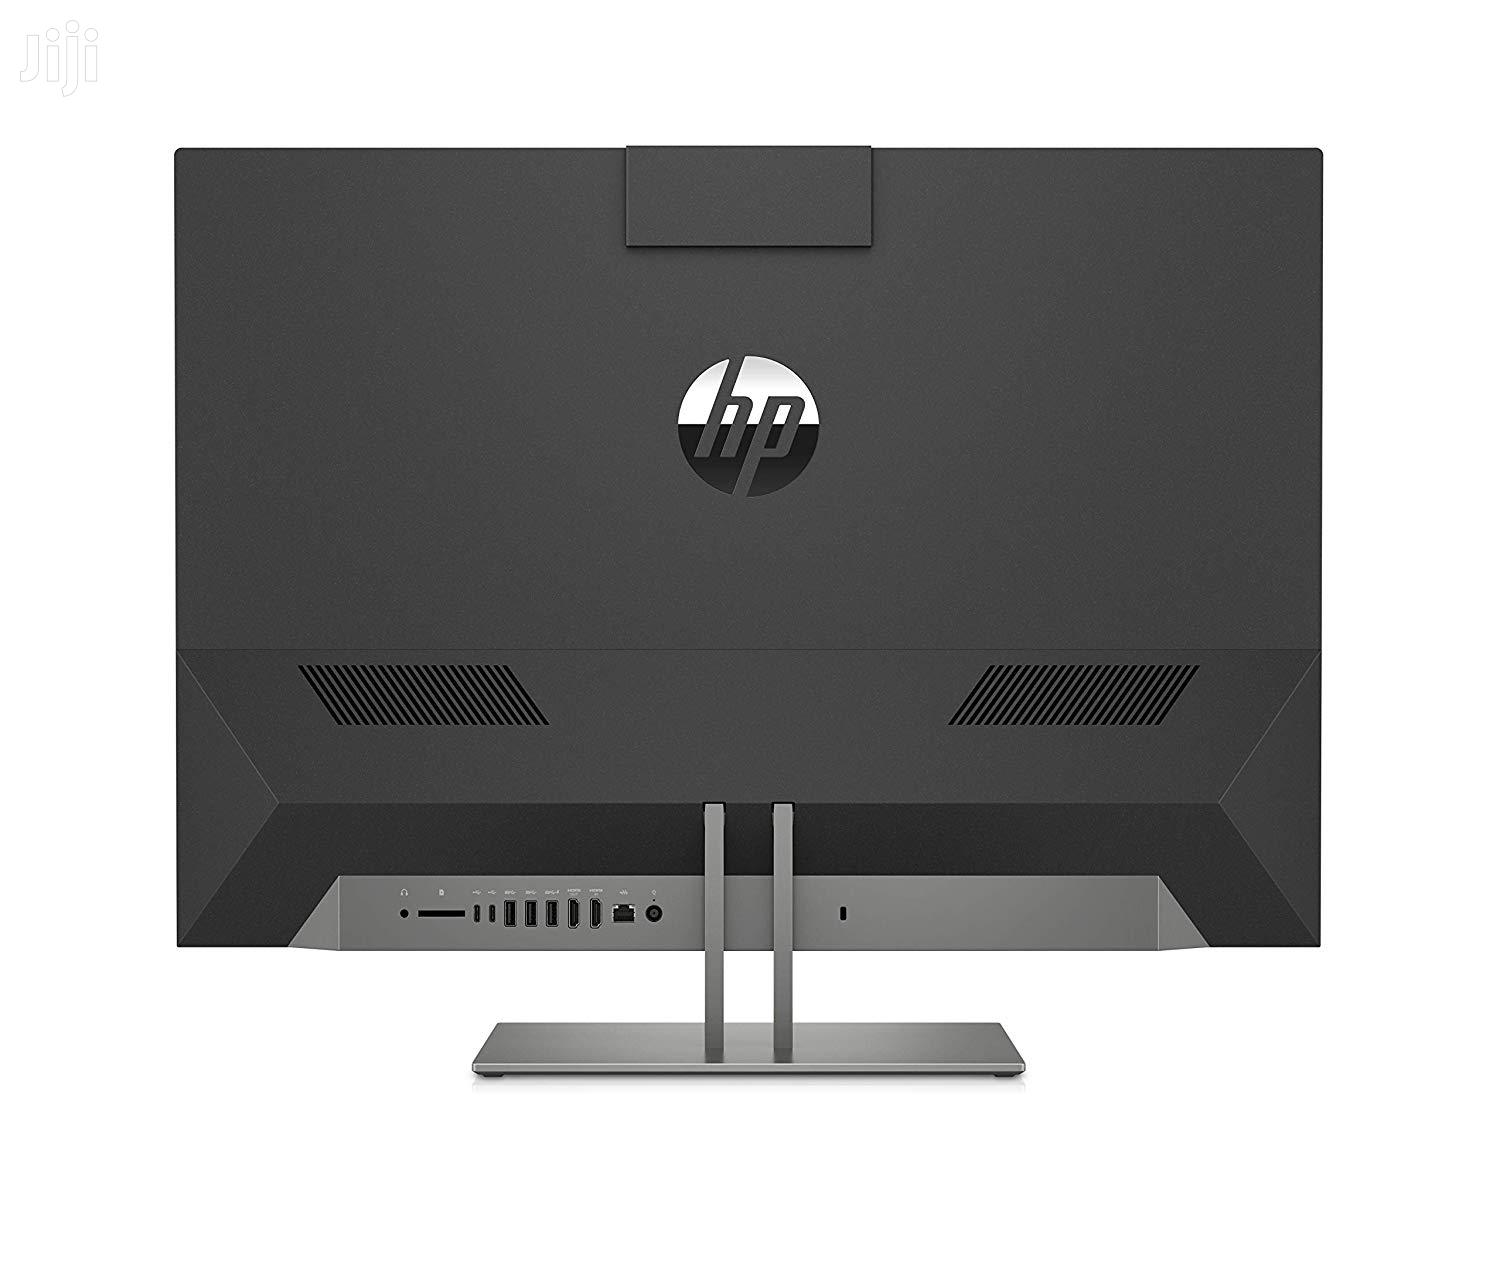 New Desktop Computer HP Pavilion 24 12GB Intel Core i5 HDD 1T | Laptops & Computers for sale in Accra Metropolitan, Greater Accra, Ghana